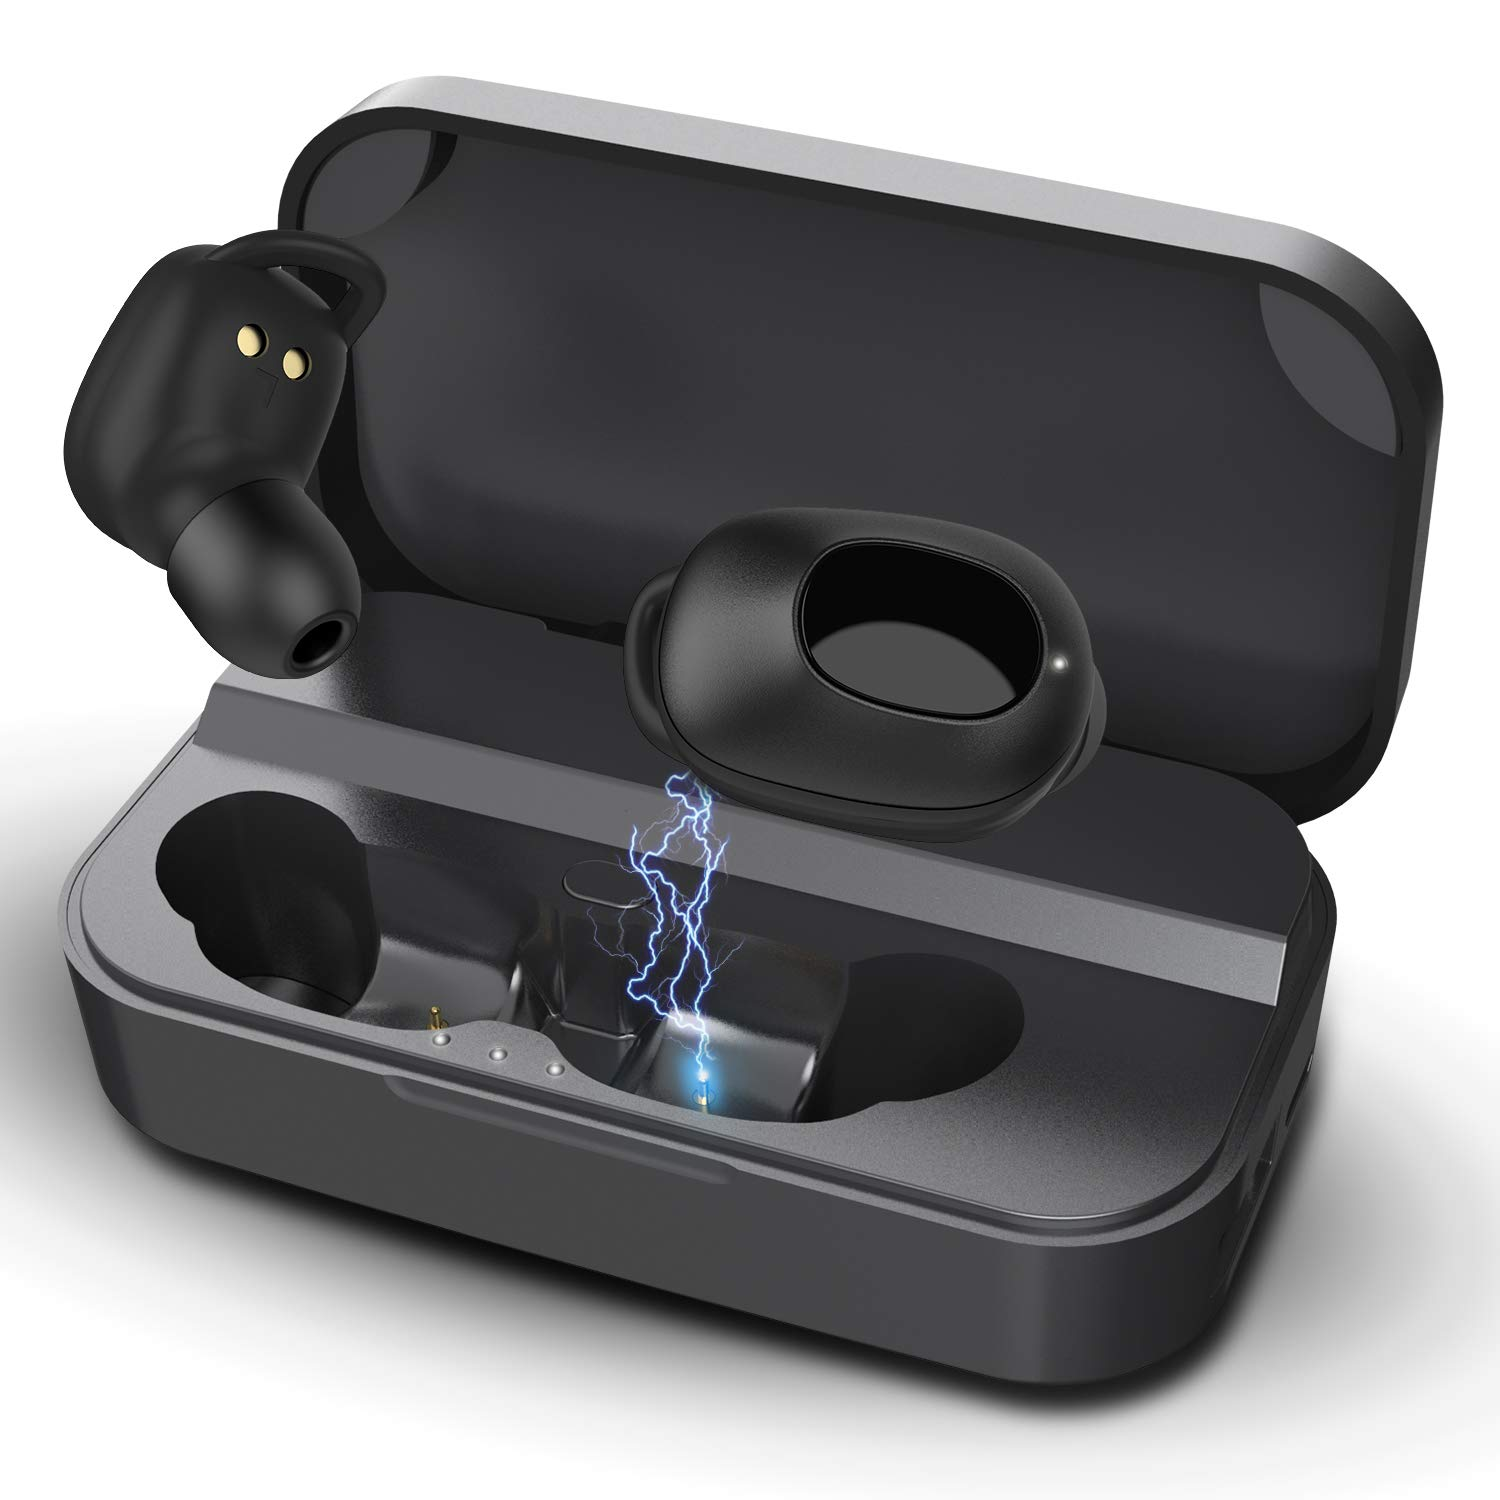 Wireless Bluetooth Earbuds V5.0, Muzili Cordless Earbuds Wireless Headphones 3000mAH Charging Case, Stable Connection, IPX7 Waterproof Workout Running Bluetooth Wireless Earbuds for iPhone Android